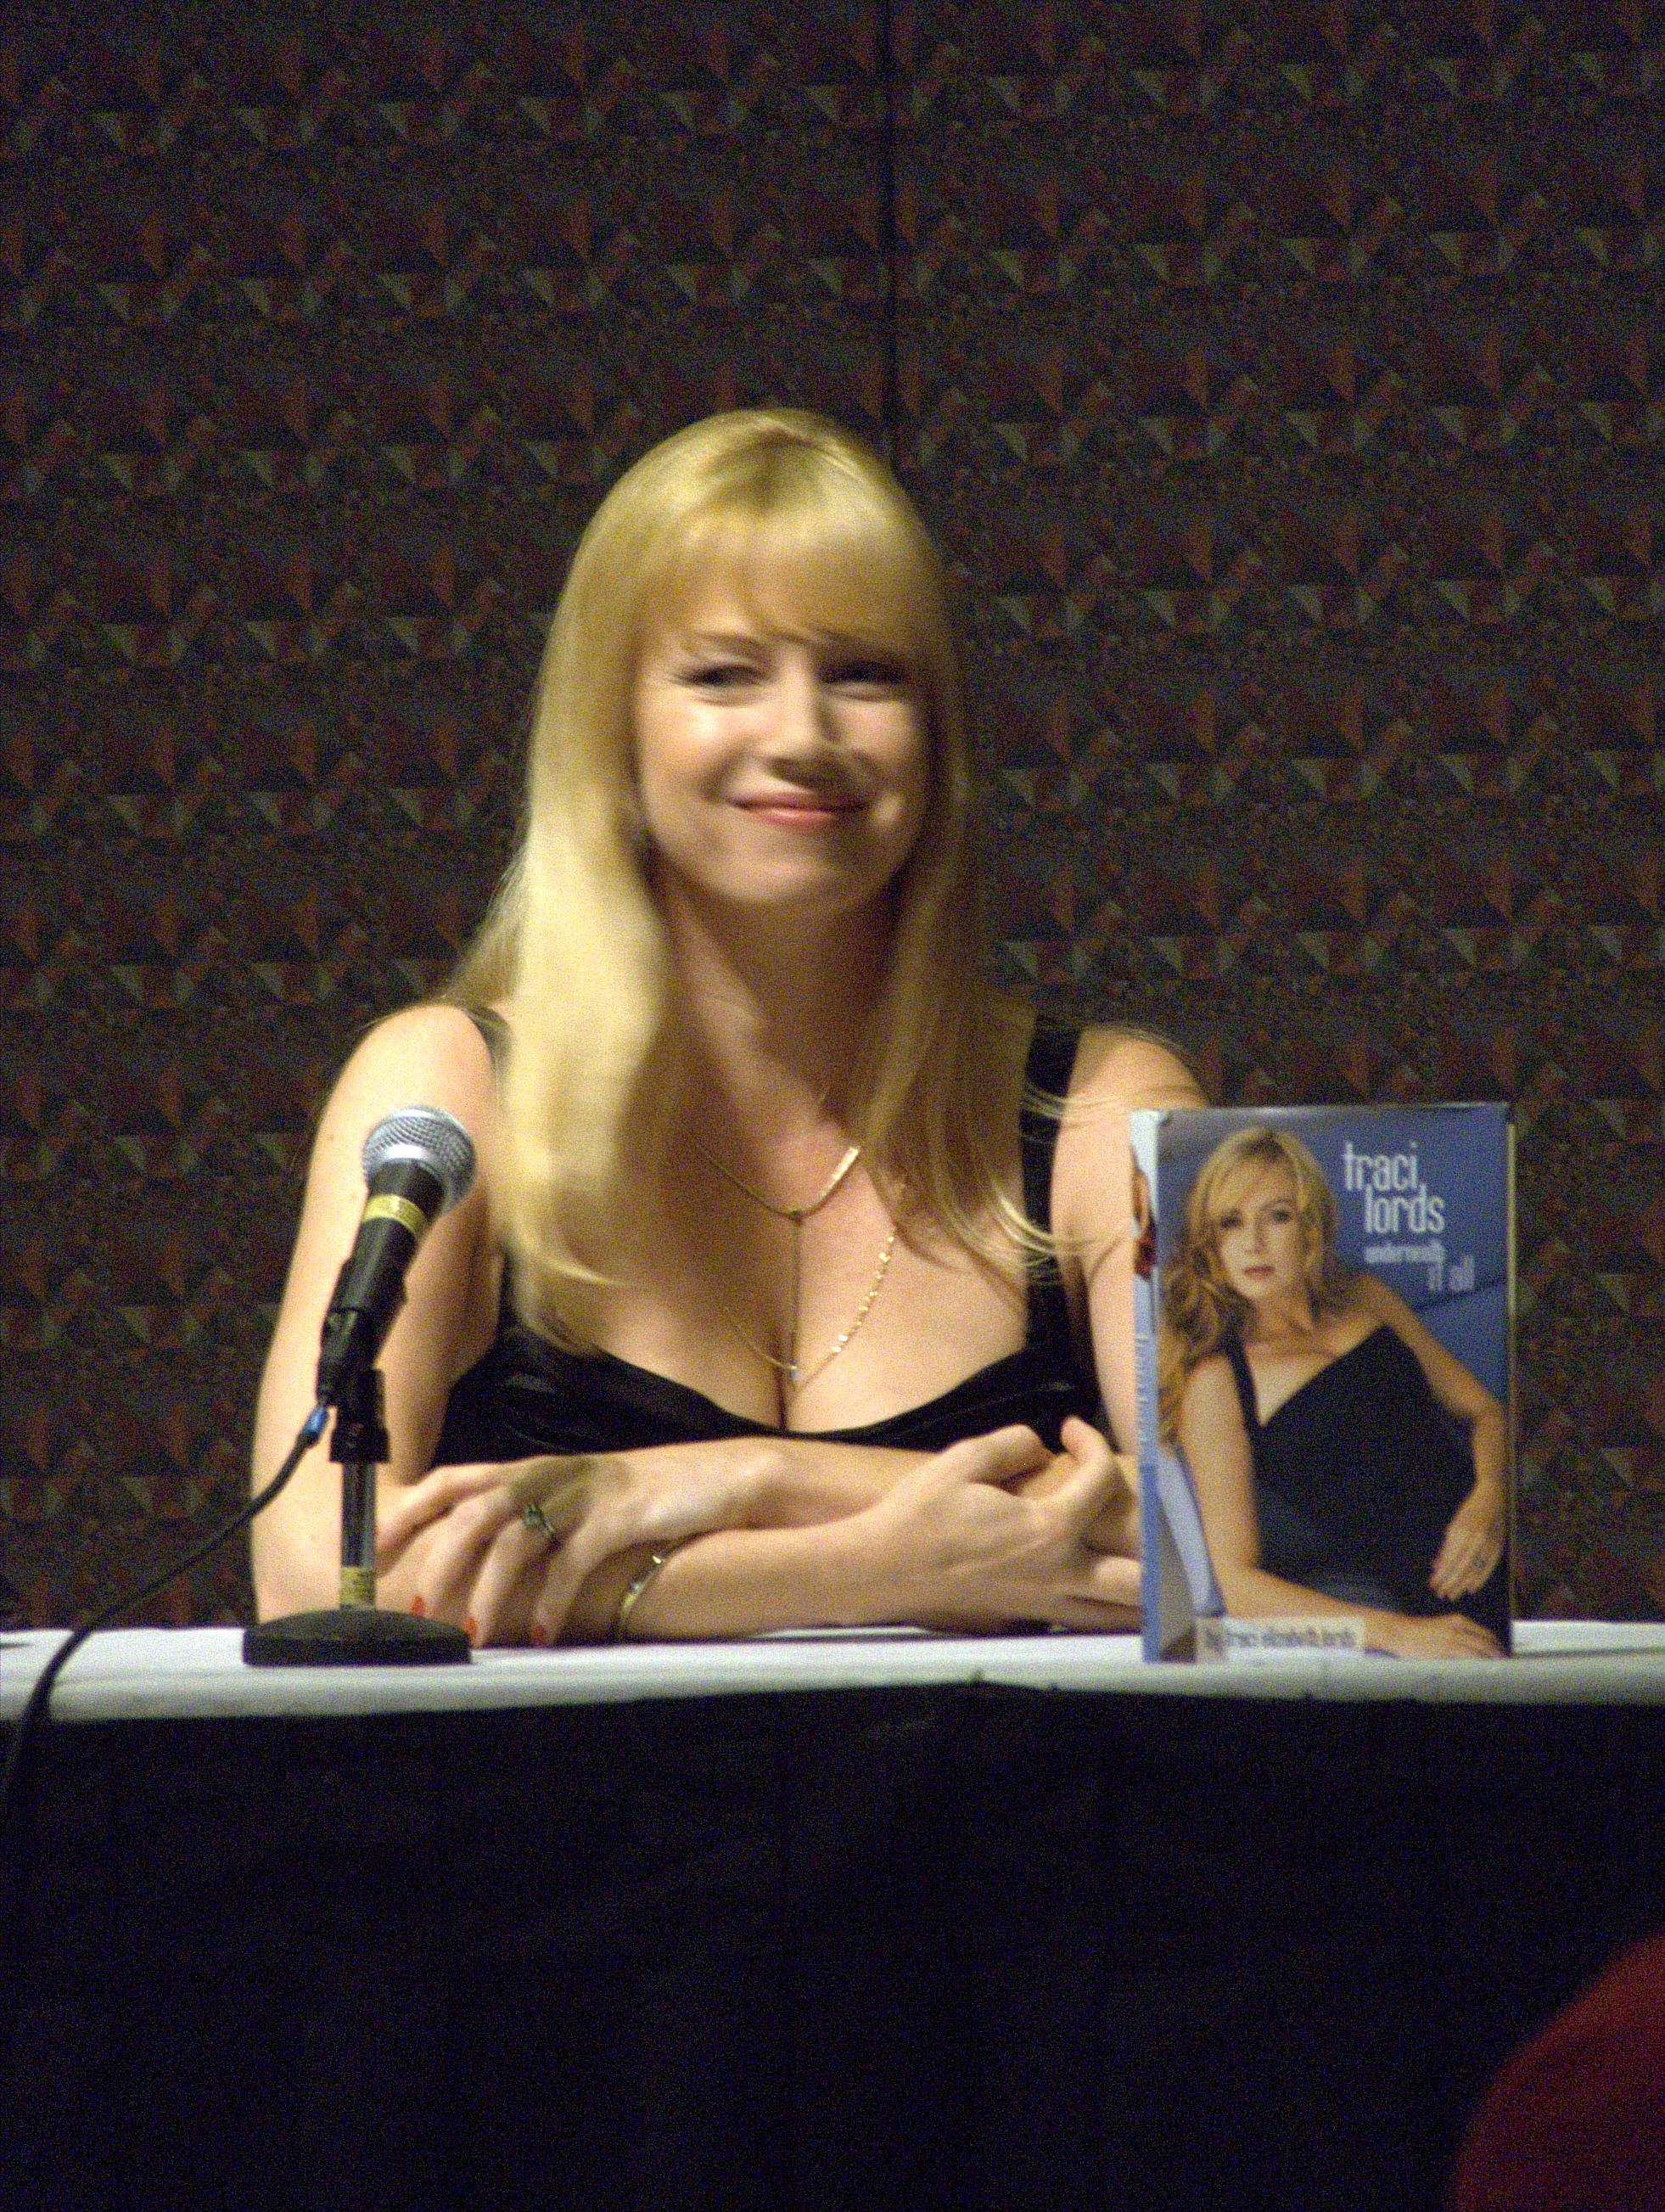 File:Traci Lords DragonCon